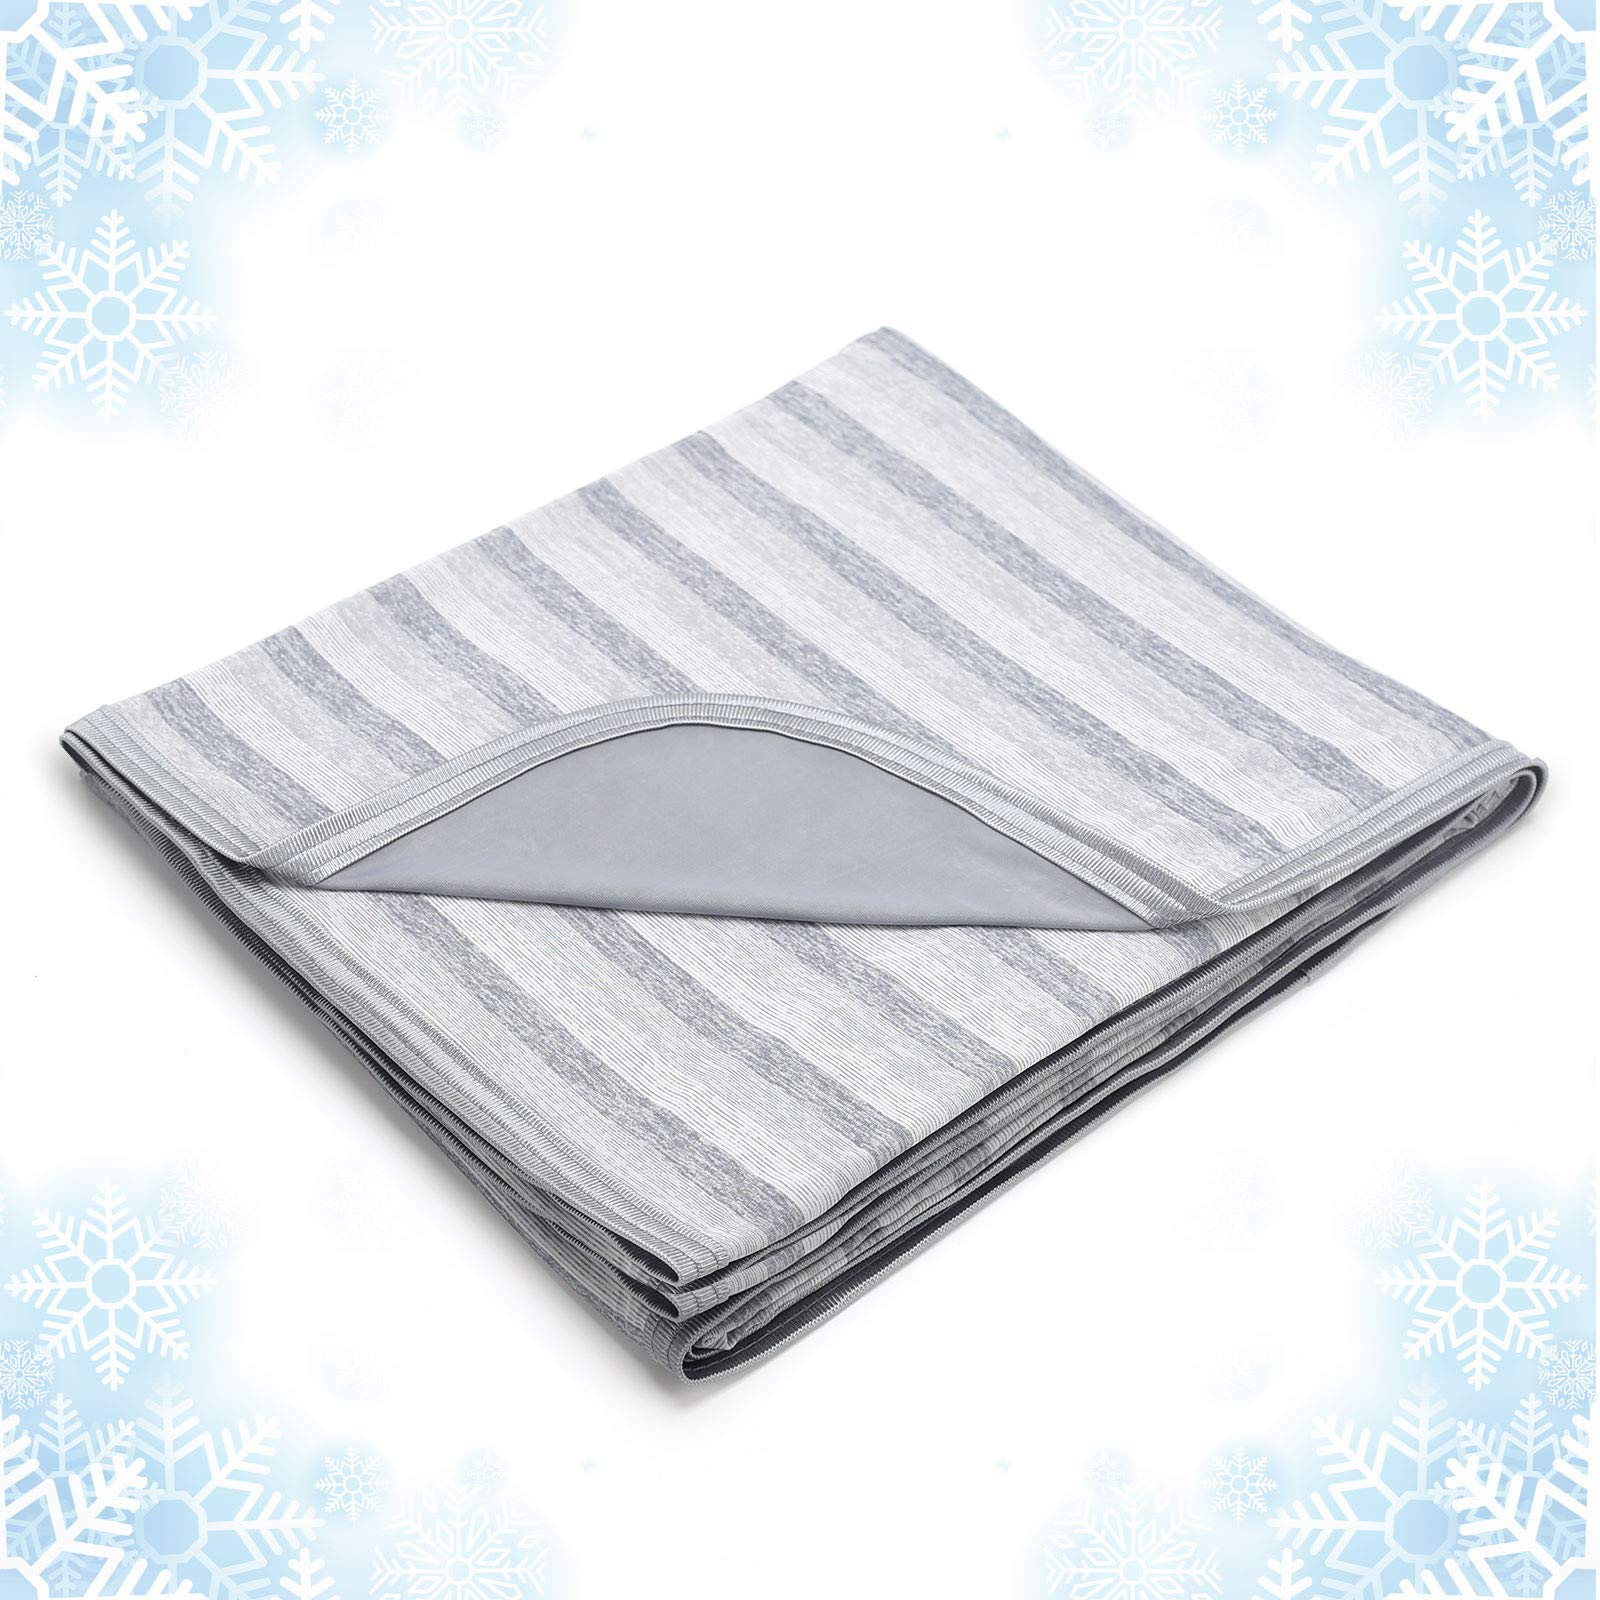 Cooling Blanket with Double Sided Cold, King Size Big Oversize Luxury Lightweight Breathable Bed Blankets, Transfer Heat to Keep Adults, Children Cool for Hot Sleepers Night Sweats, with Travel Bag